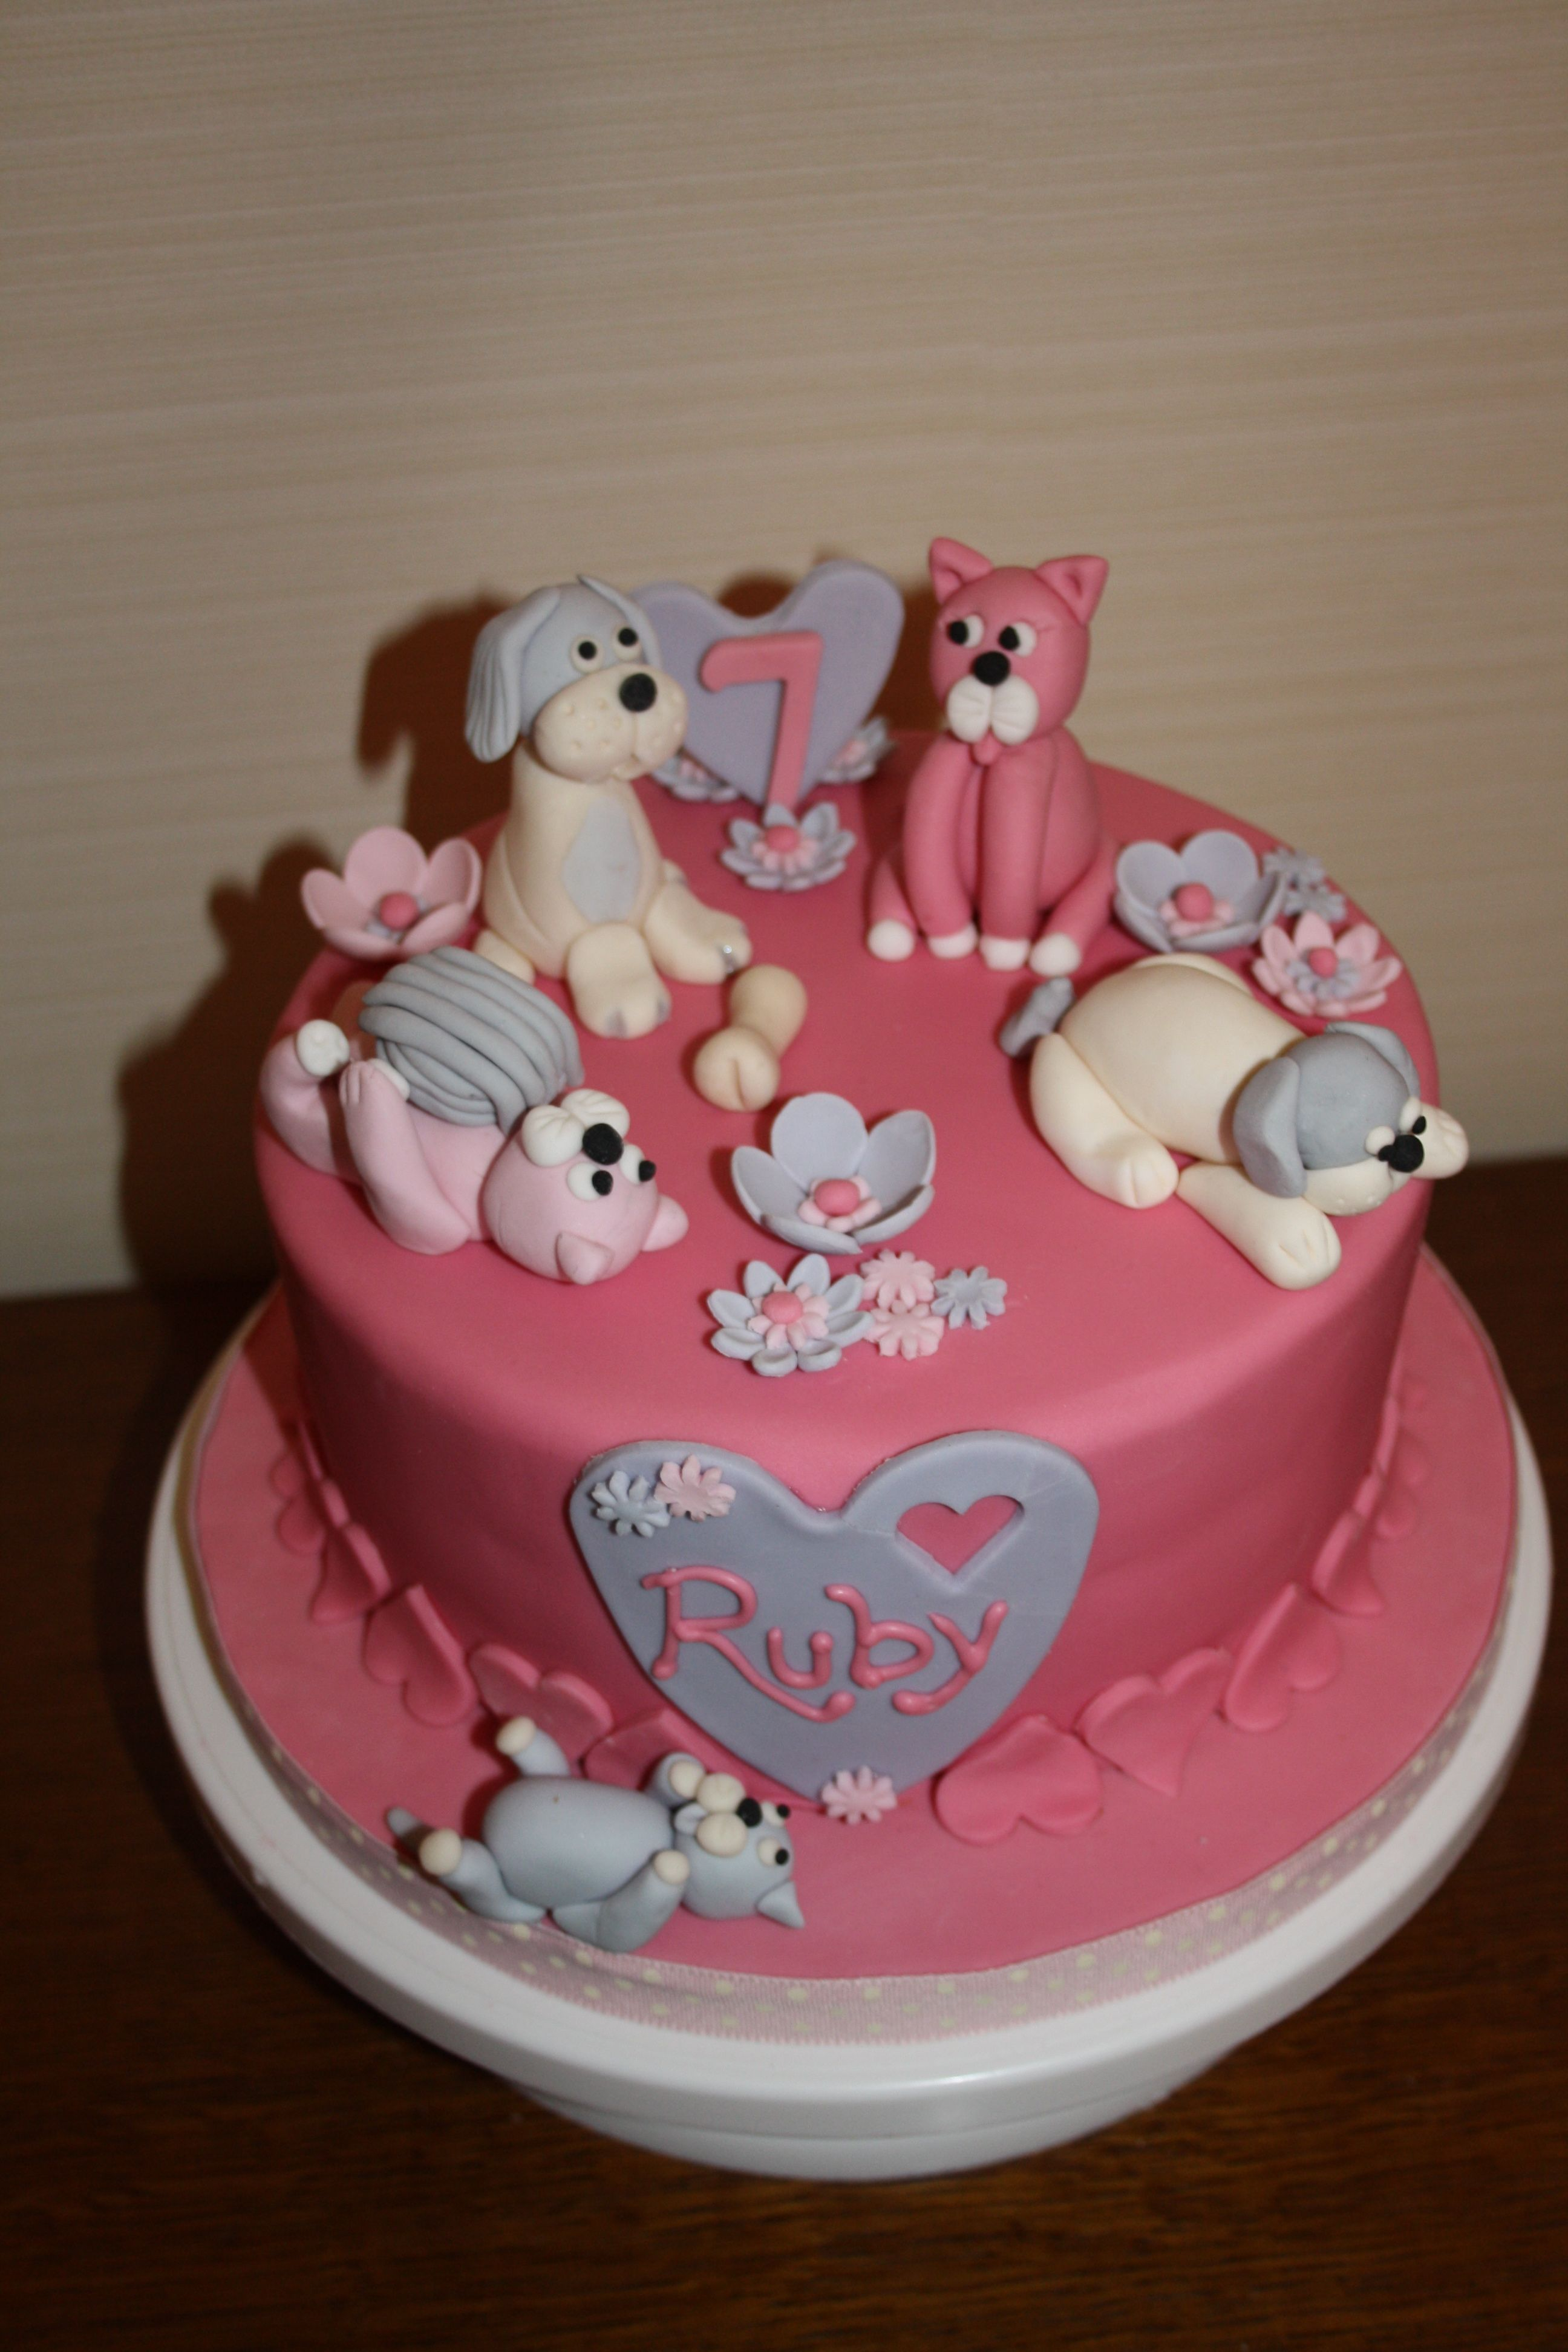 A Birthday Cake For A Very Cute 7 Year Old Who Loves Dogs Cats